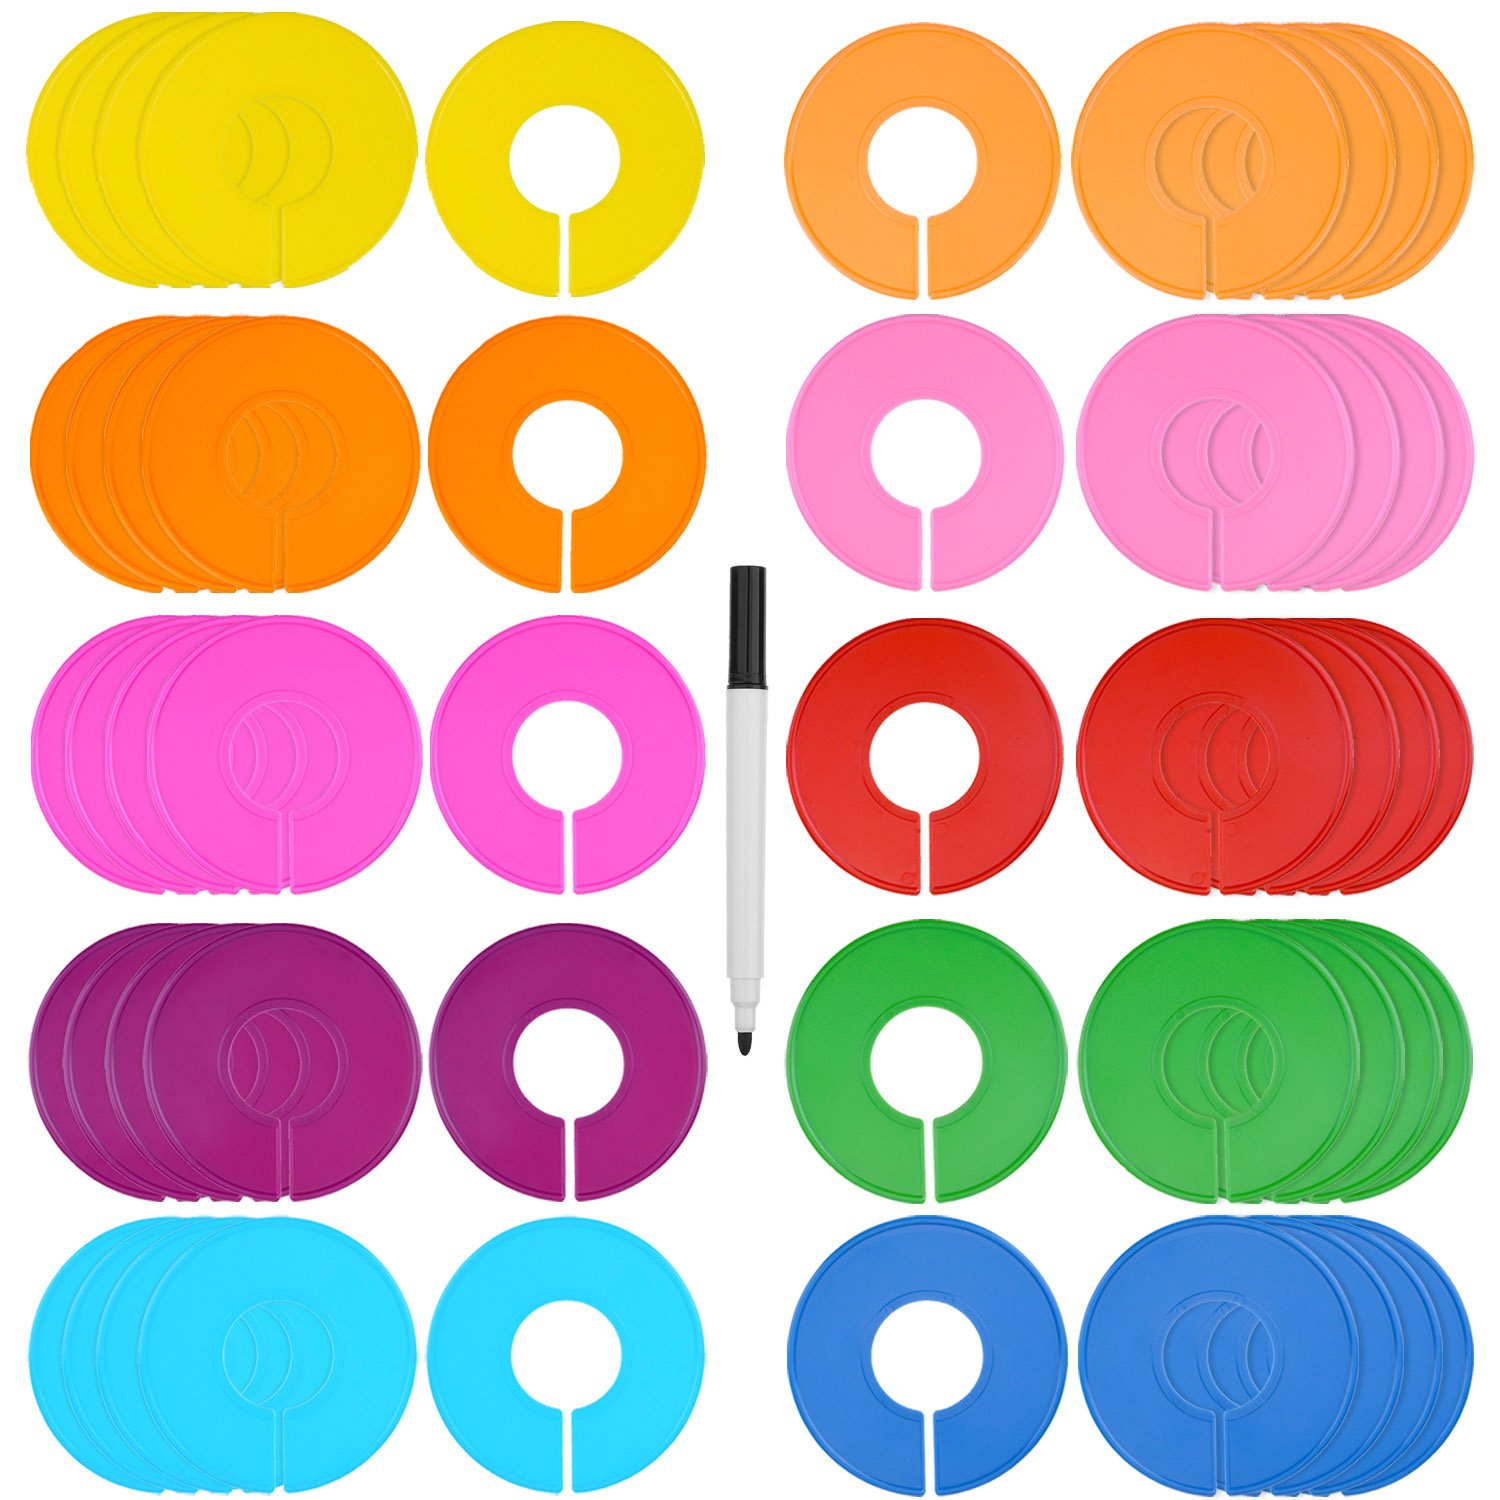 Blulu 50 Pieces Colored Blank Closet Size Dividers Round Clothing Rack Dividers with Marker Pen